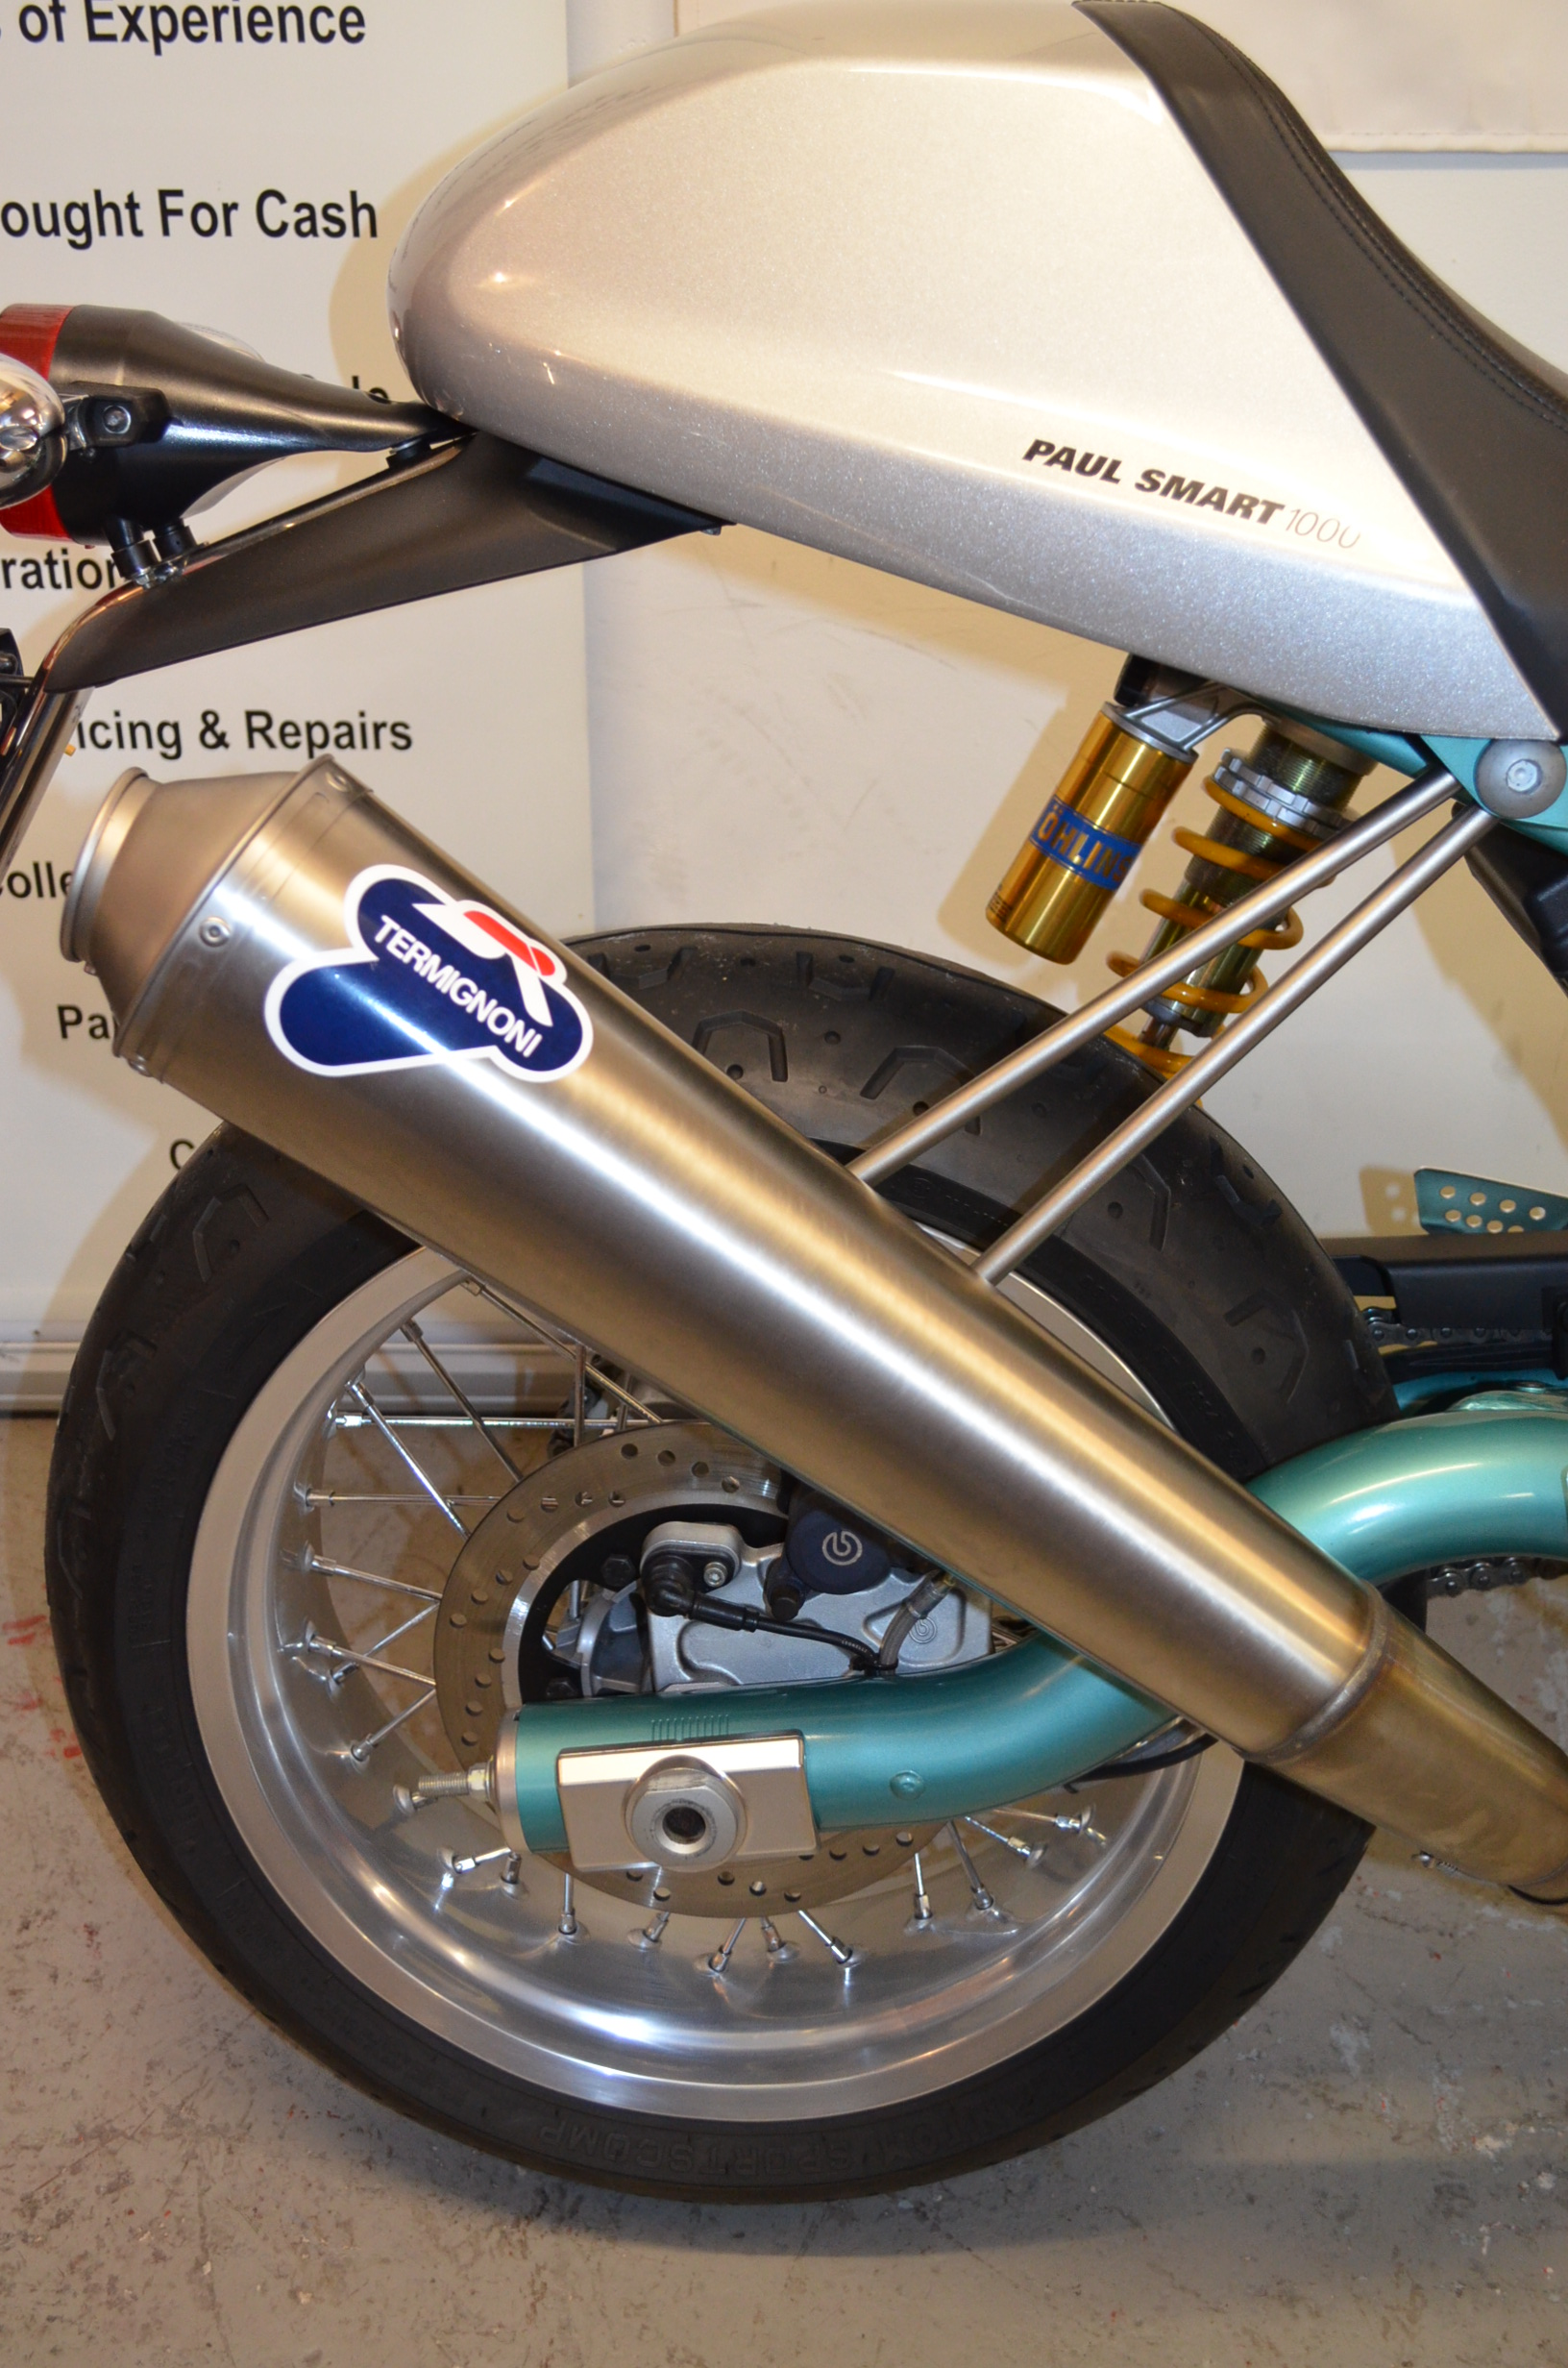 Ducati Paul Smart 1000 Limited Edition   VDUO Motorcycles